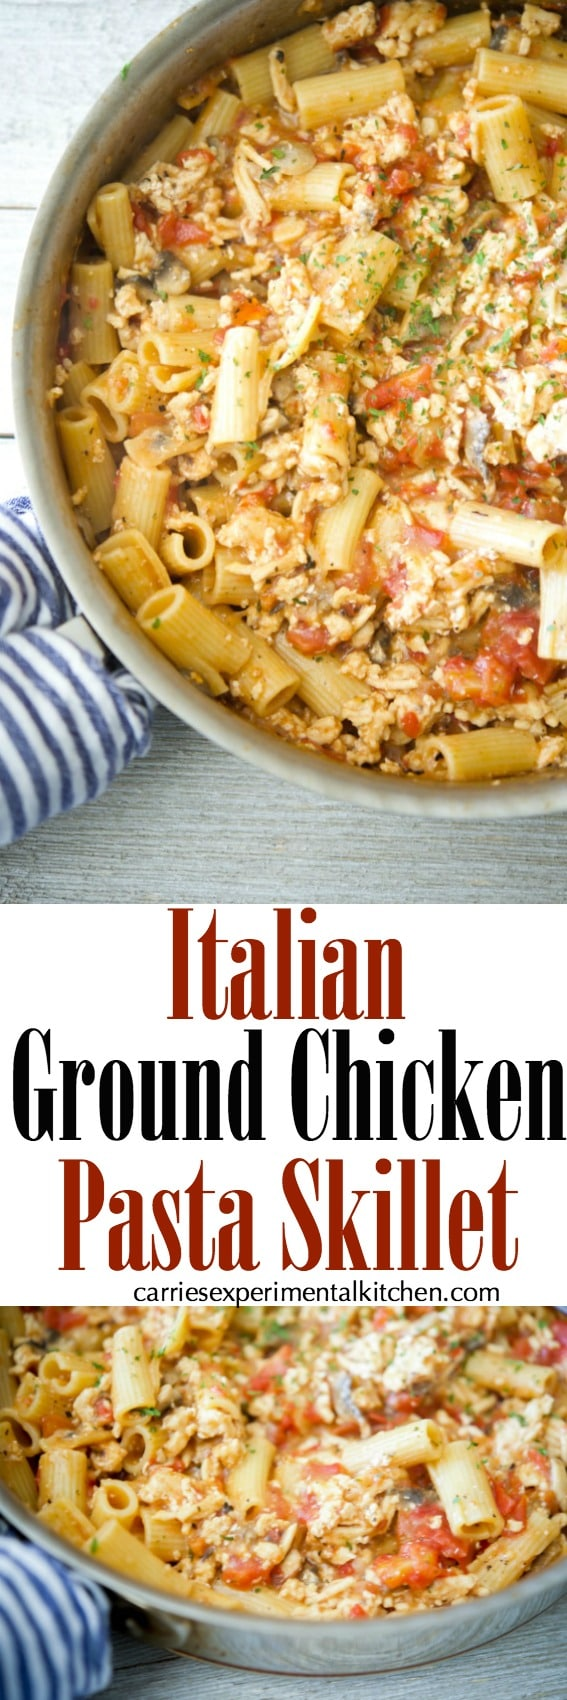 Italian Ground Chicken Pasta Skillet is a quick and easy, all-in-one meal that's deliciously flavorful without the extra mess.#pasta #skillet #chicken